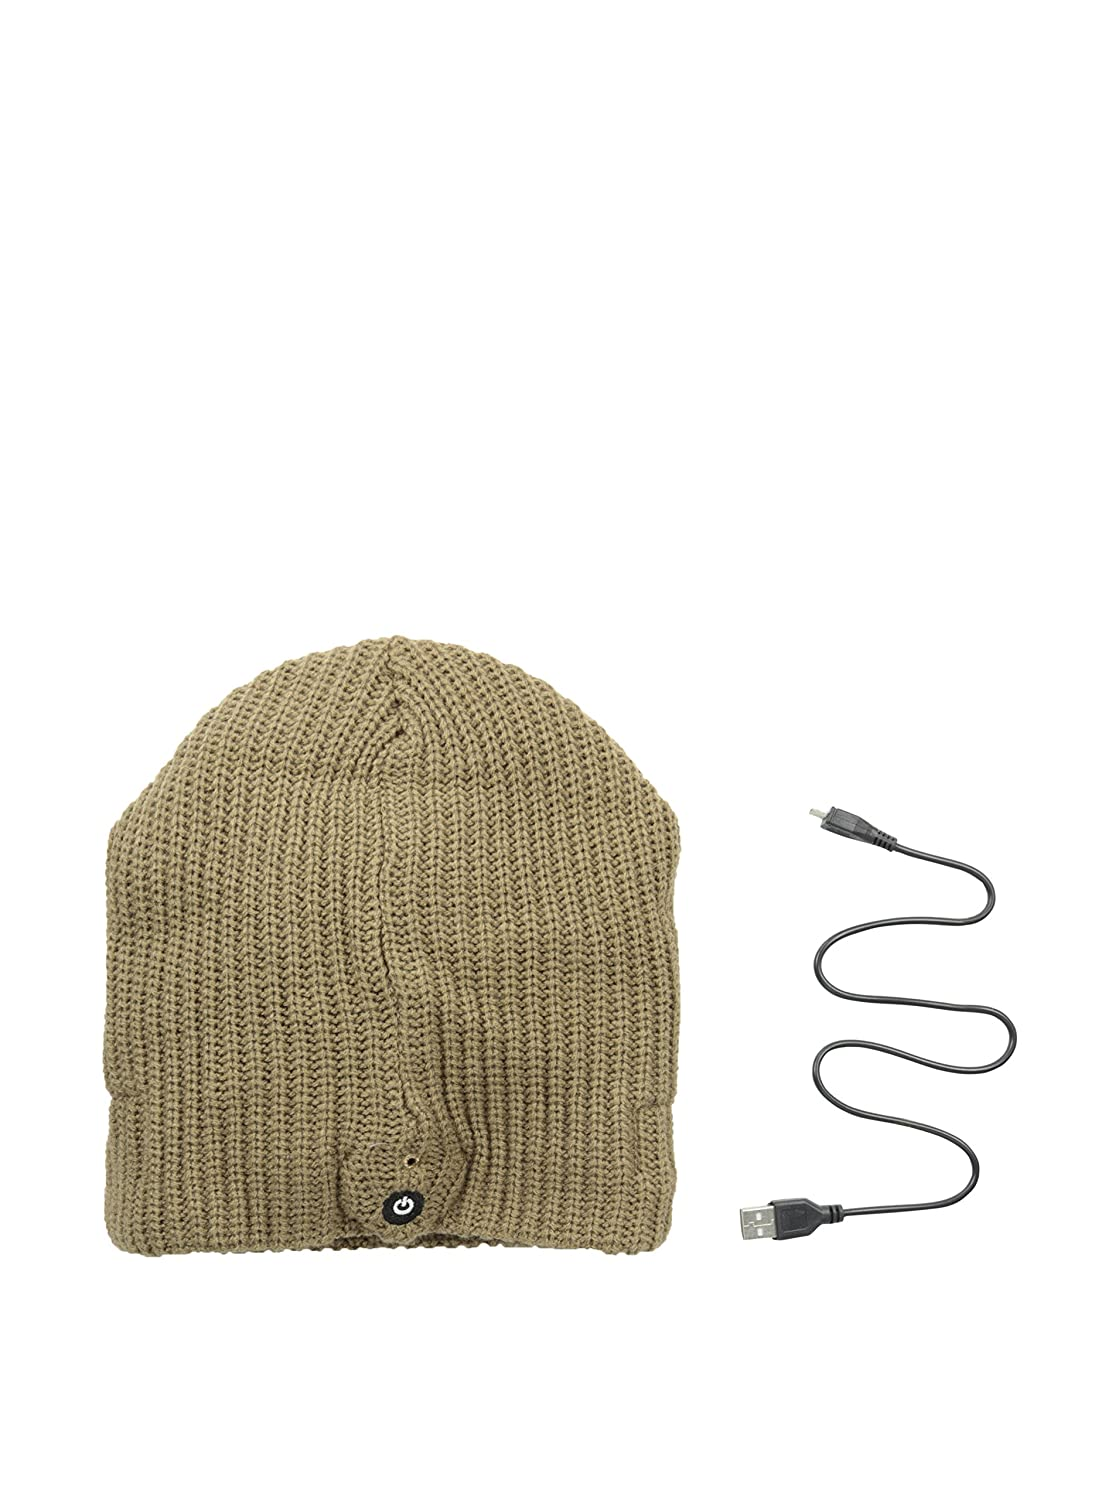 1 Voice - The Original Bluetooth Beanie with Built-in Wireless Headphones - Light Brown